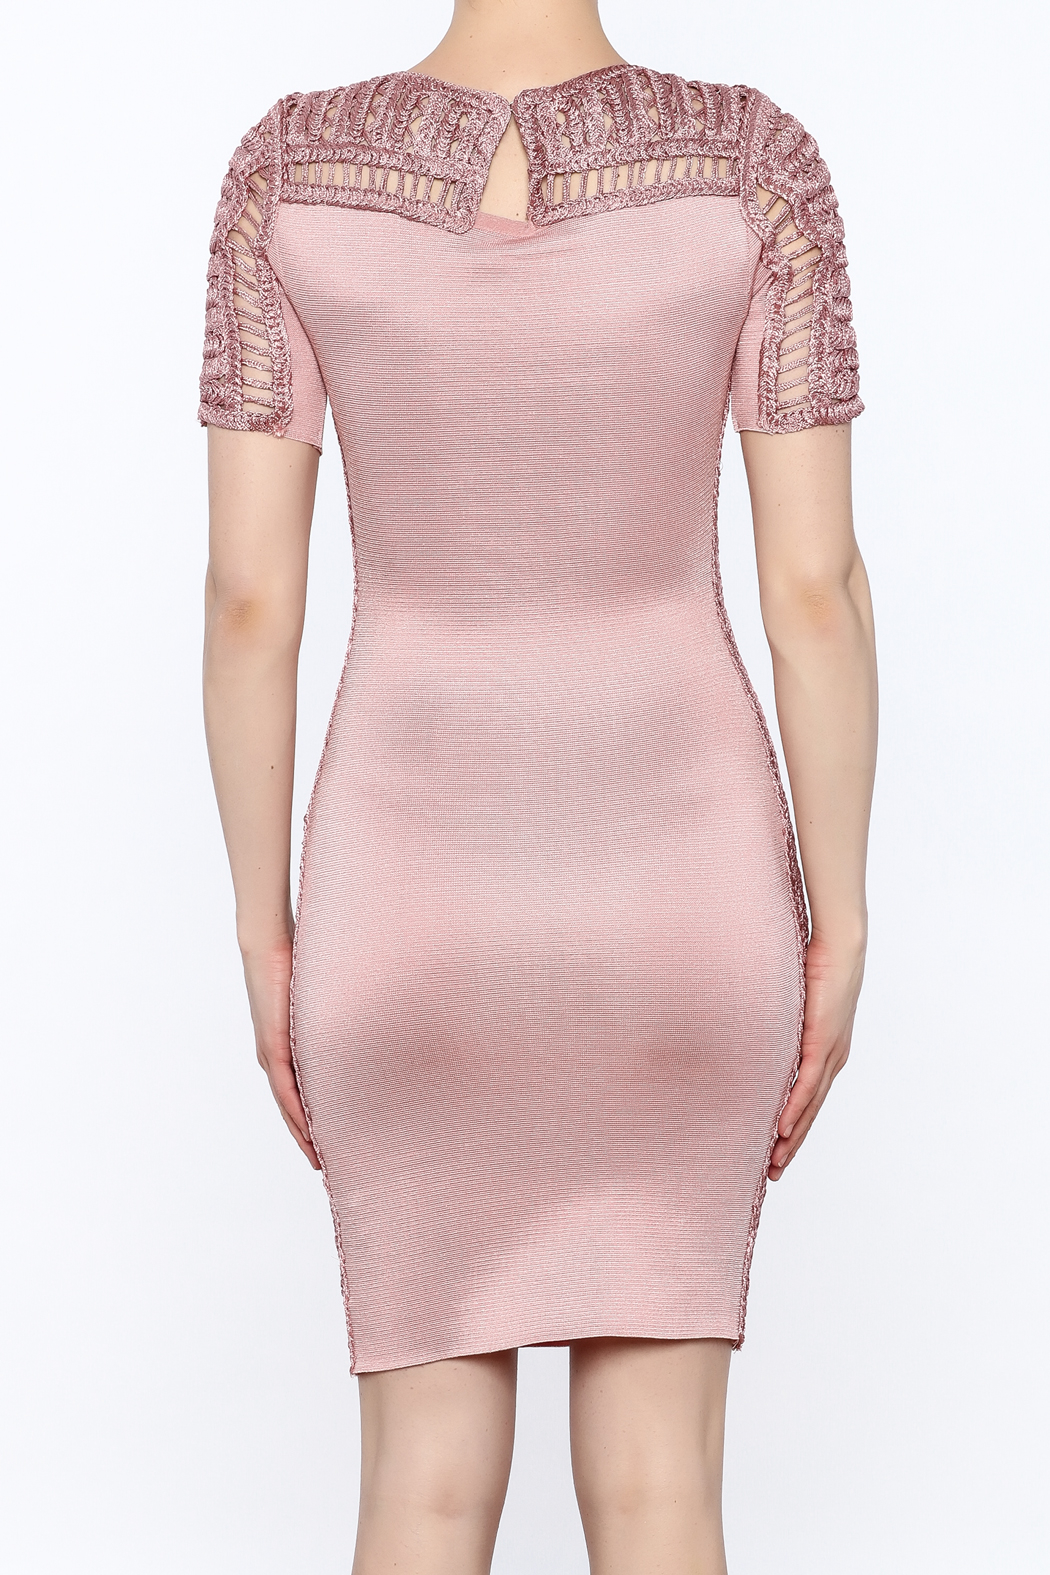 Heiress Boutique Pink Bandage Dress - Back Cropped Image